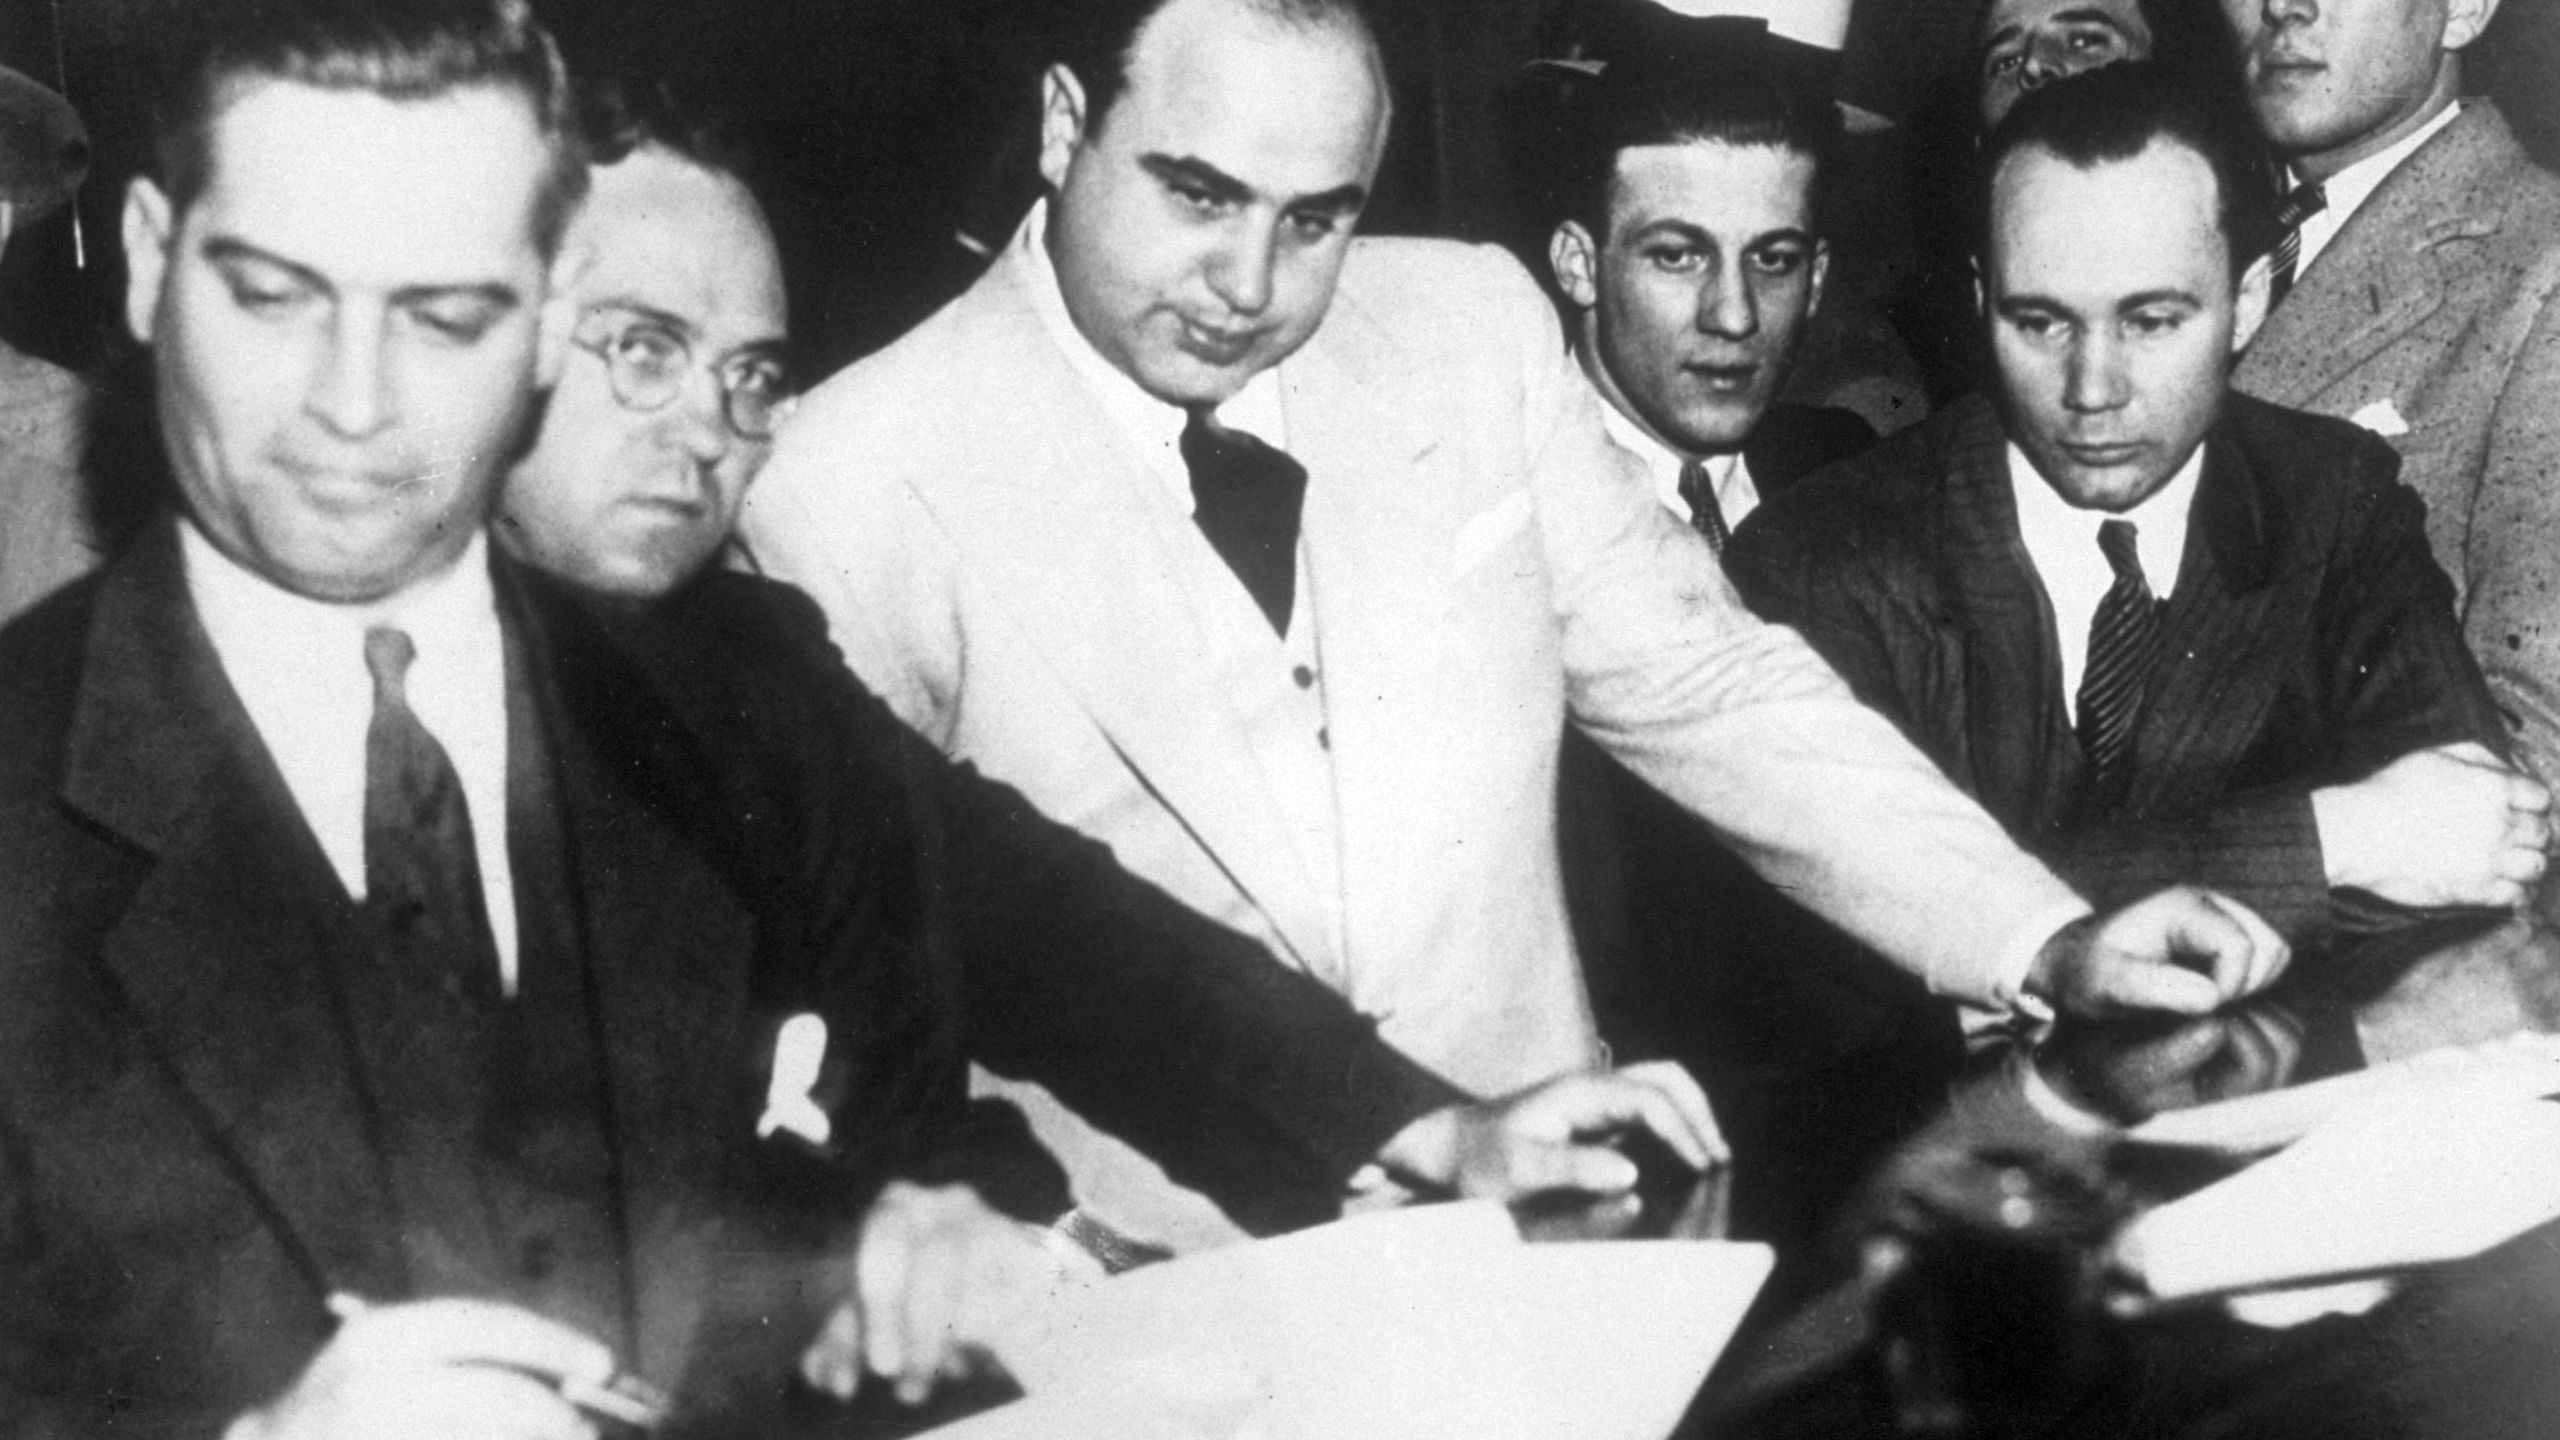 Al Capone (1899 - 1947) signing Uncle Sam's $50,000 bail bond in the Federal Building, Chicago. (Topical Press Agency/Getty Images)